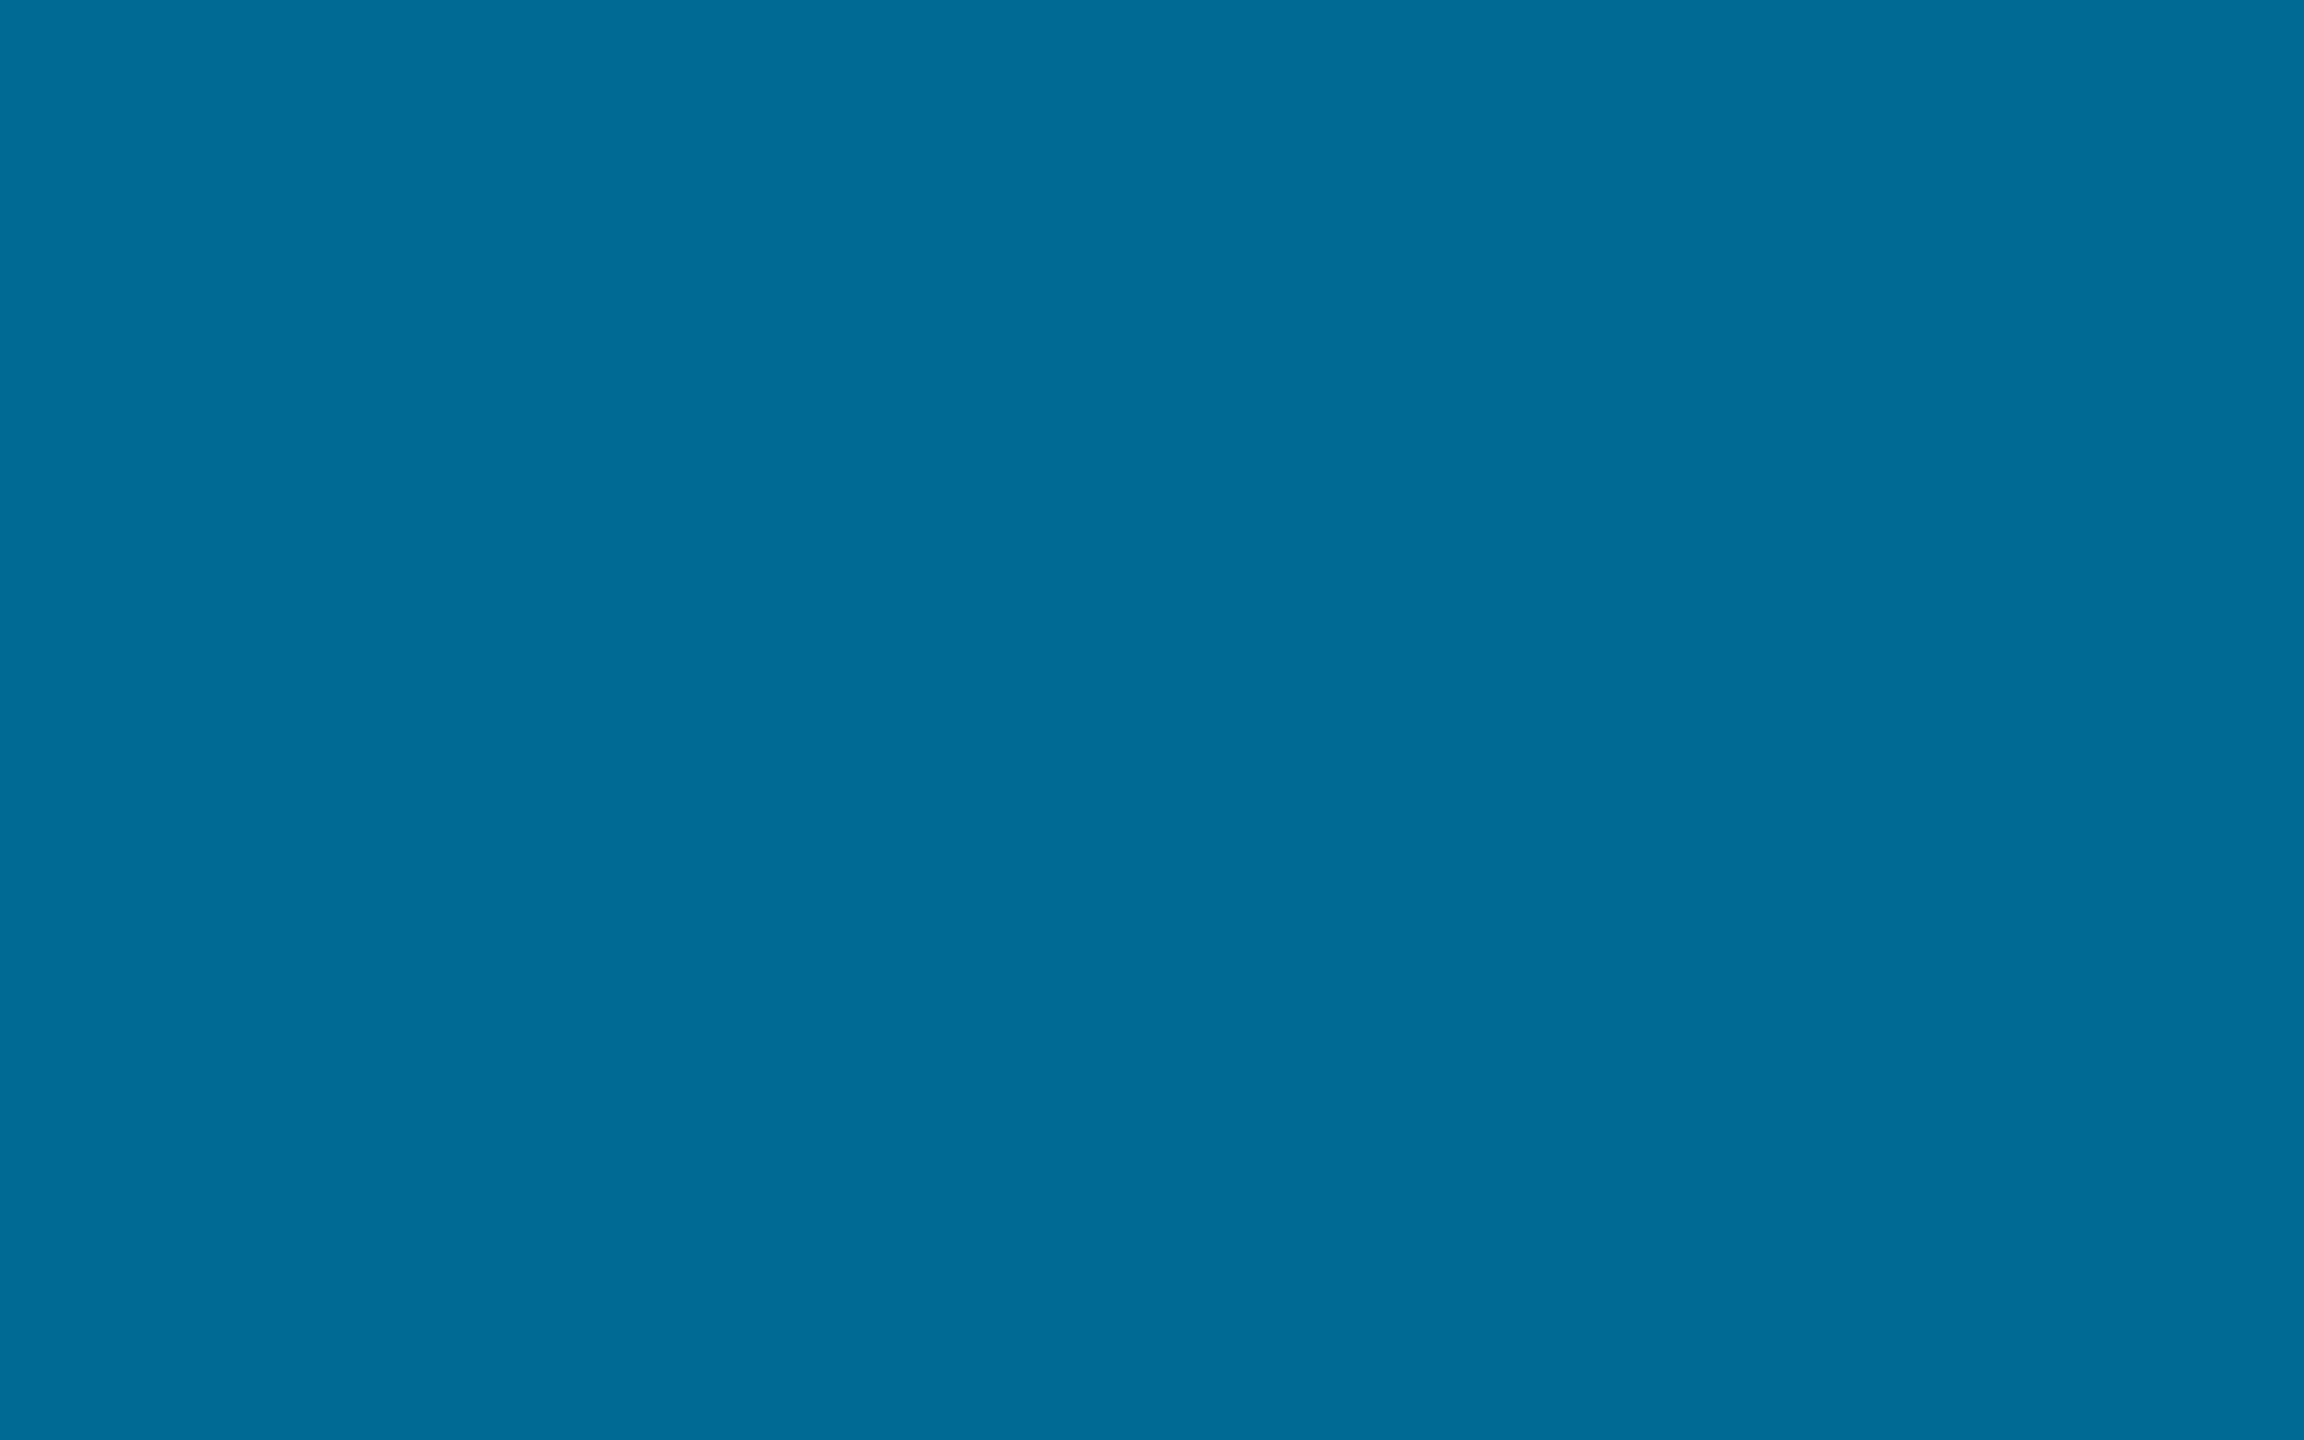 2304x1440 Sea Blue Solid Color Background